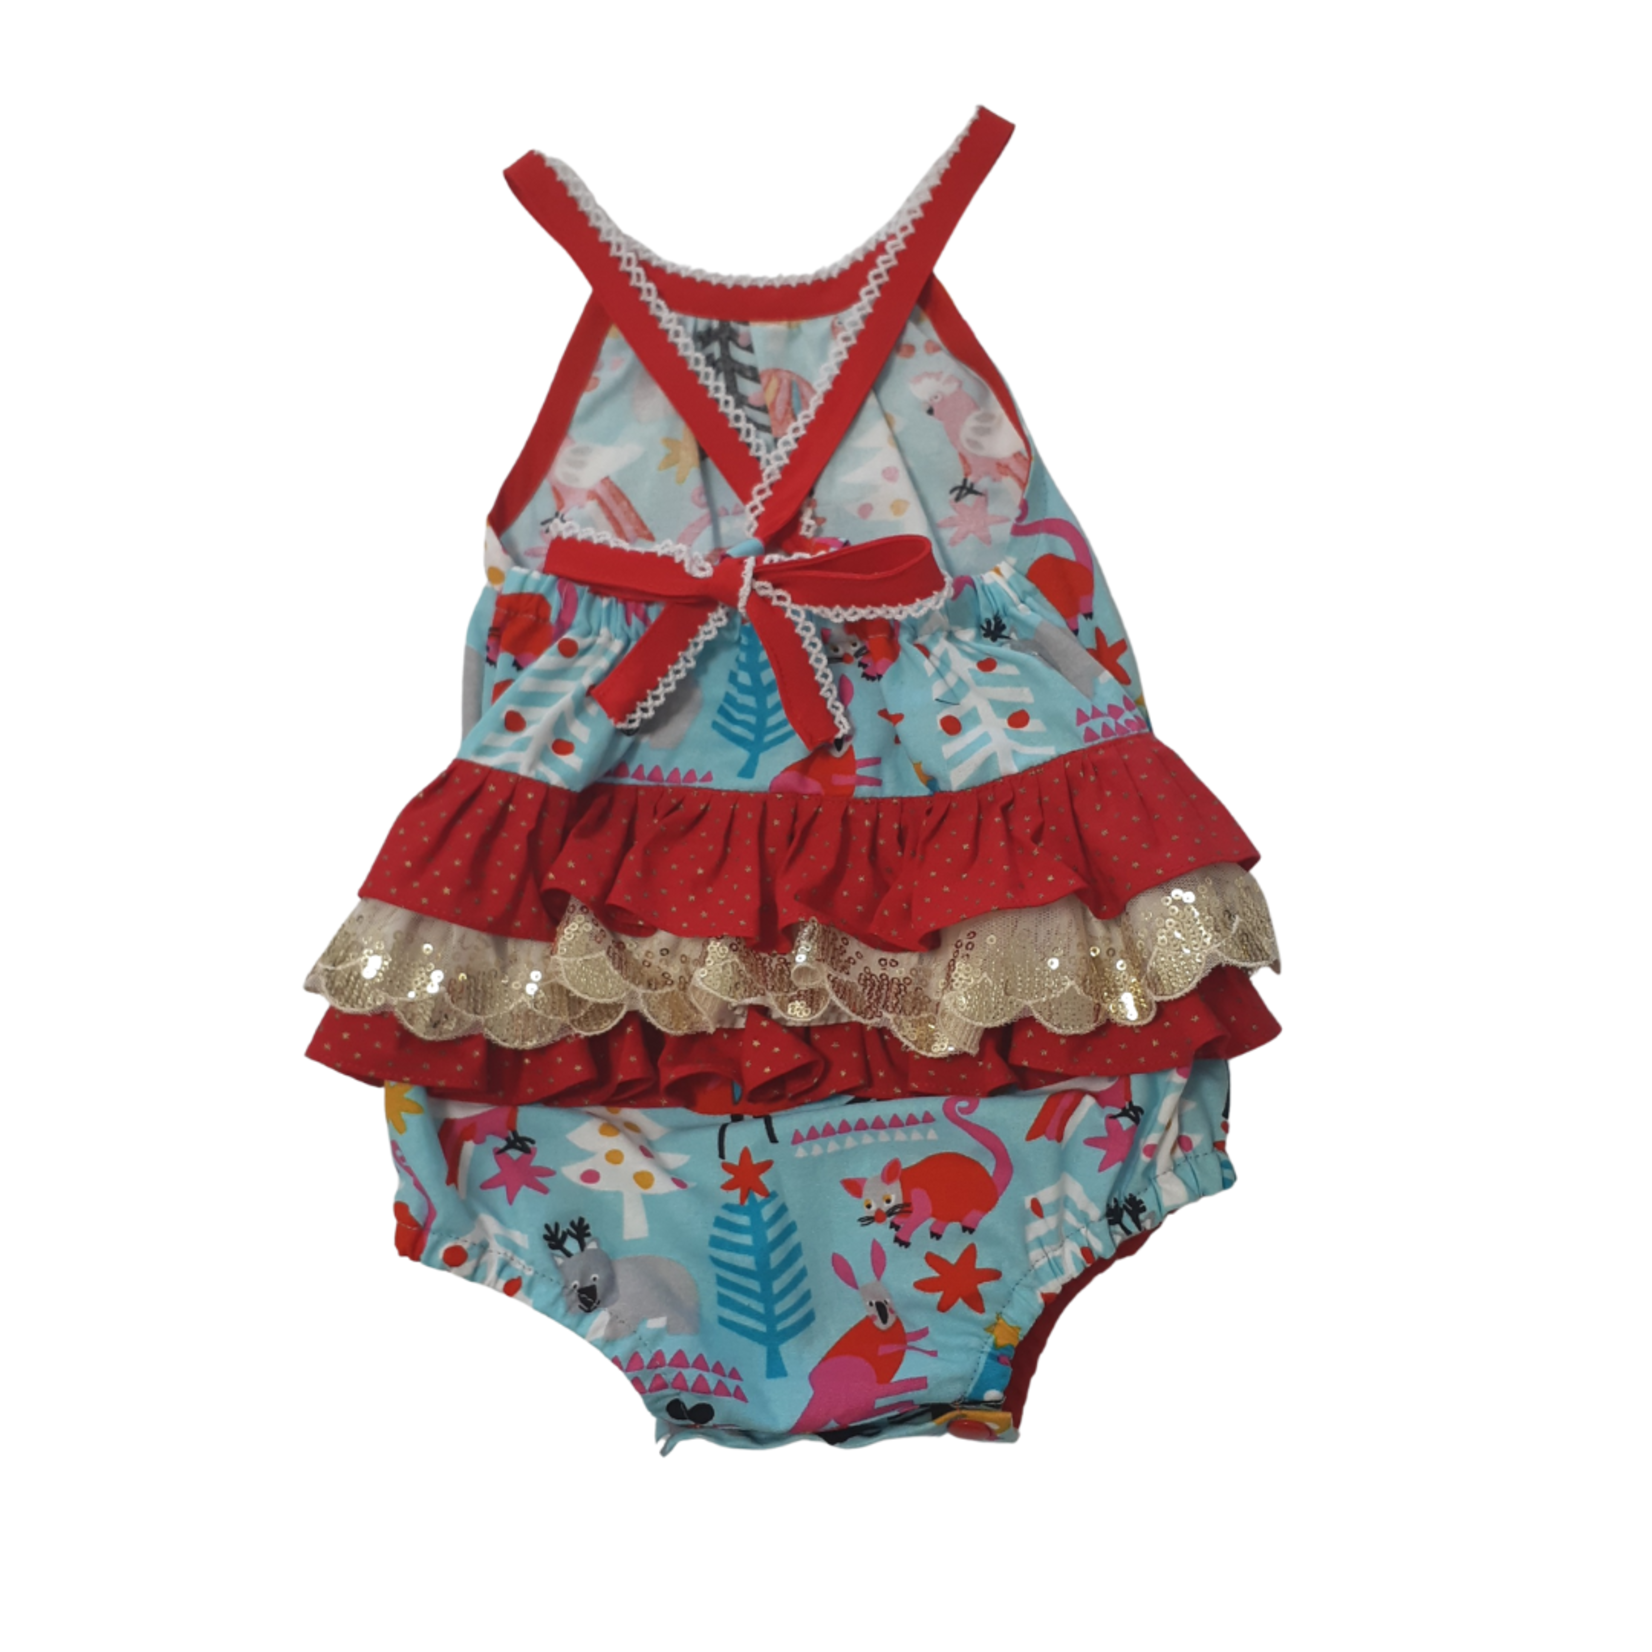 Penny's Pieces Penny's Pieces Aussie Animals Girls Xmas Romper